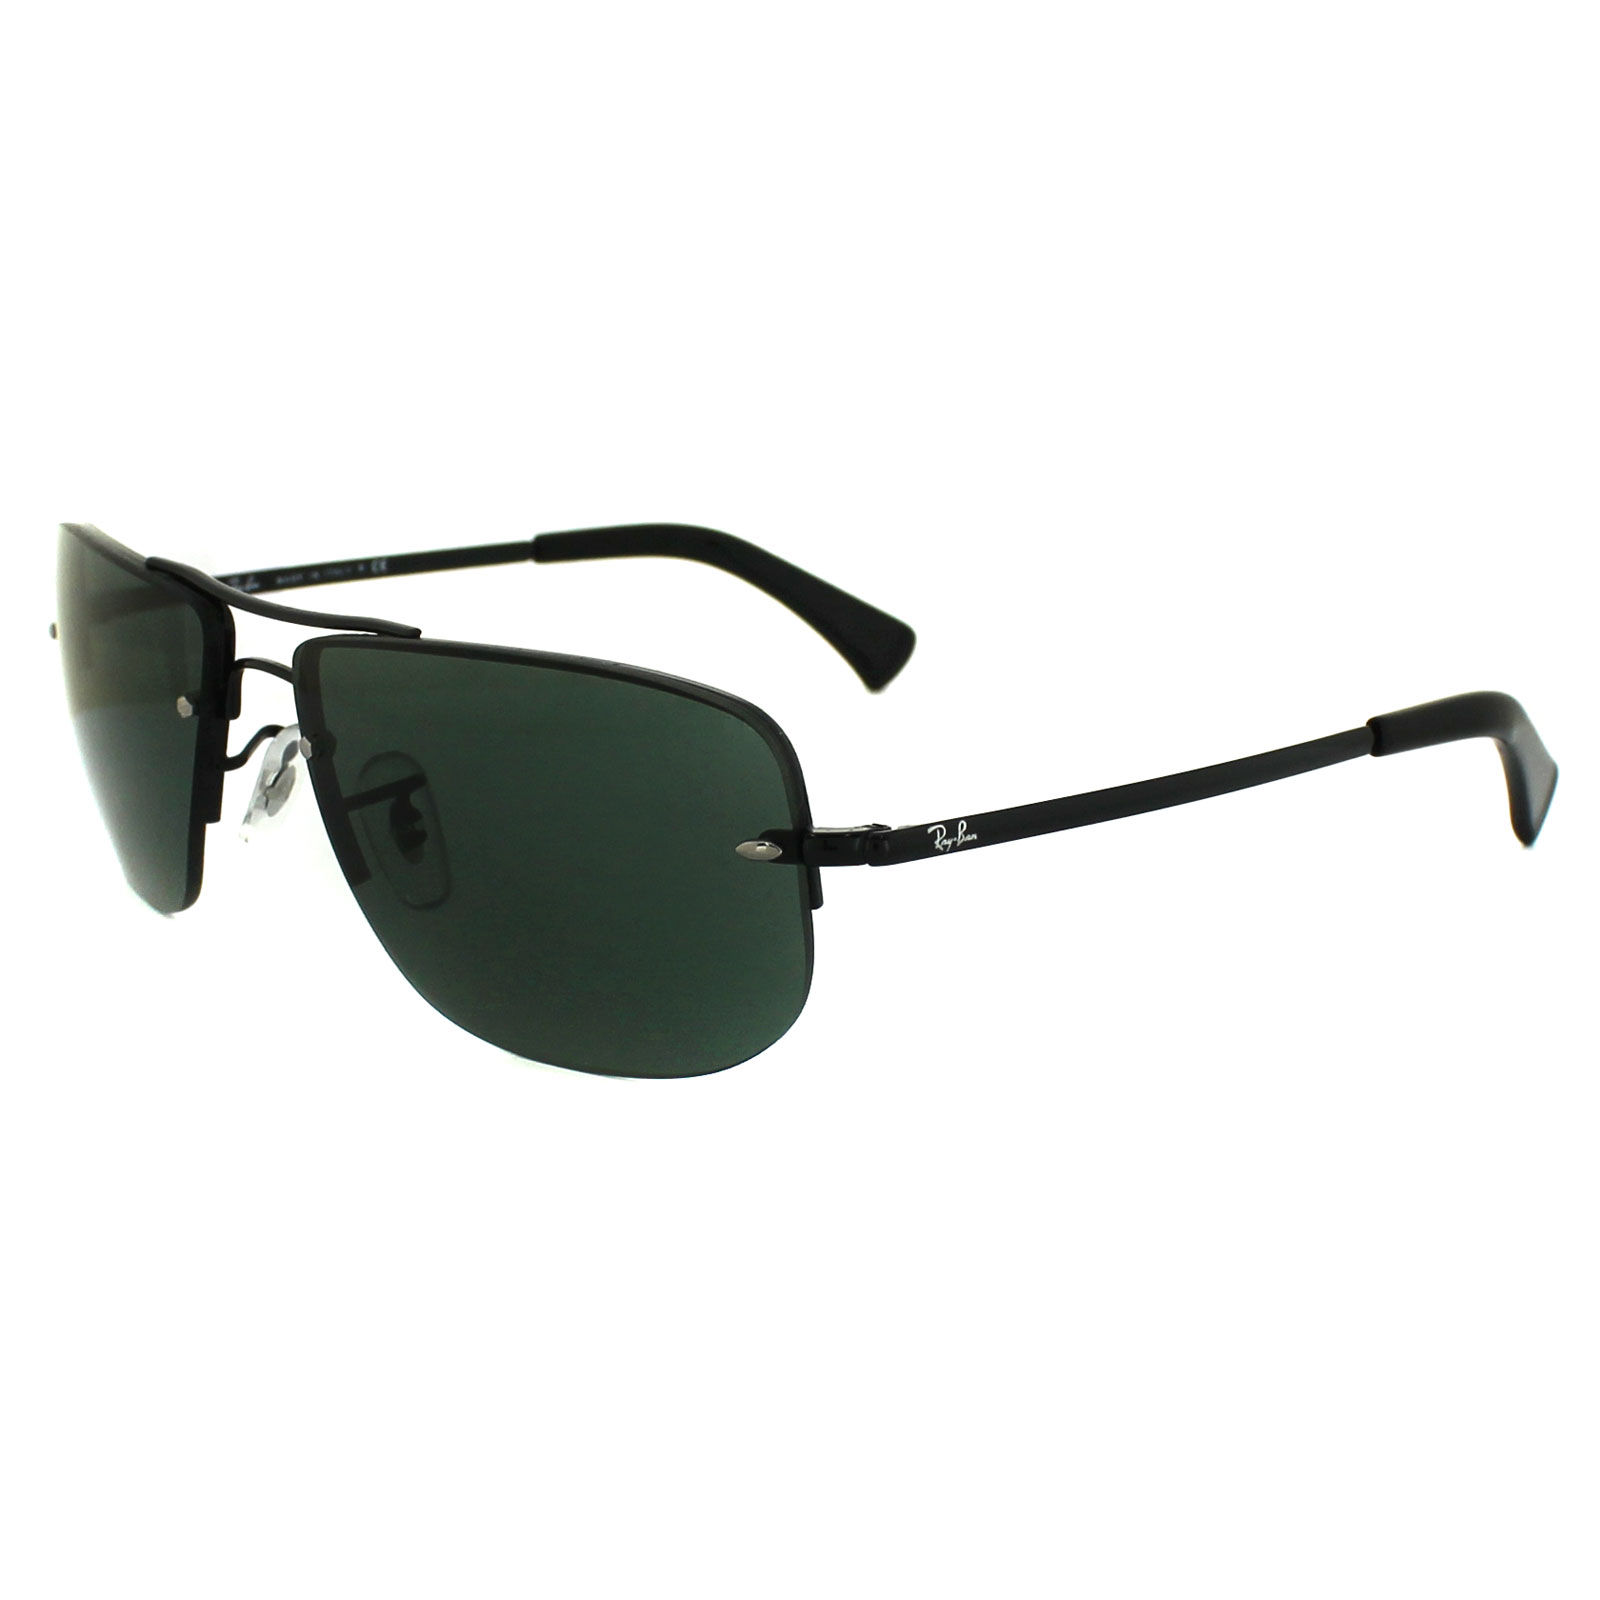 124076df2d6 Ray Ban Sunglasses Rb 3497 « Heritage Malta